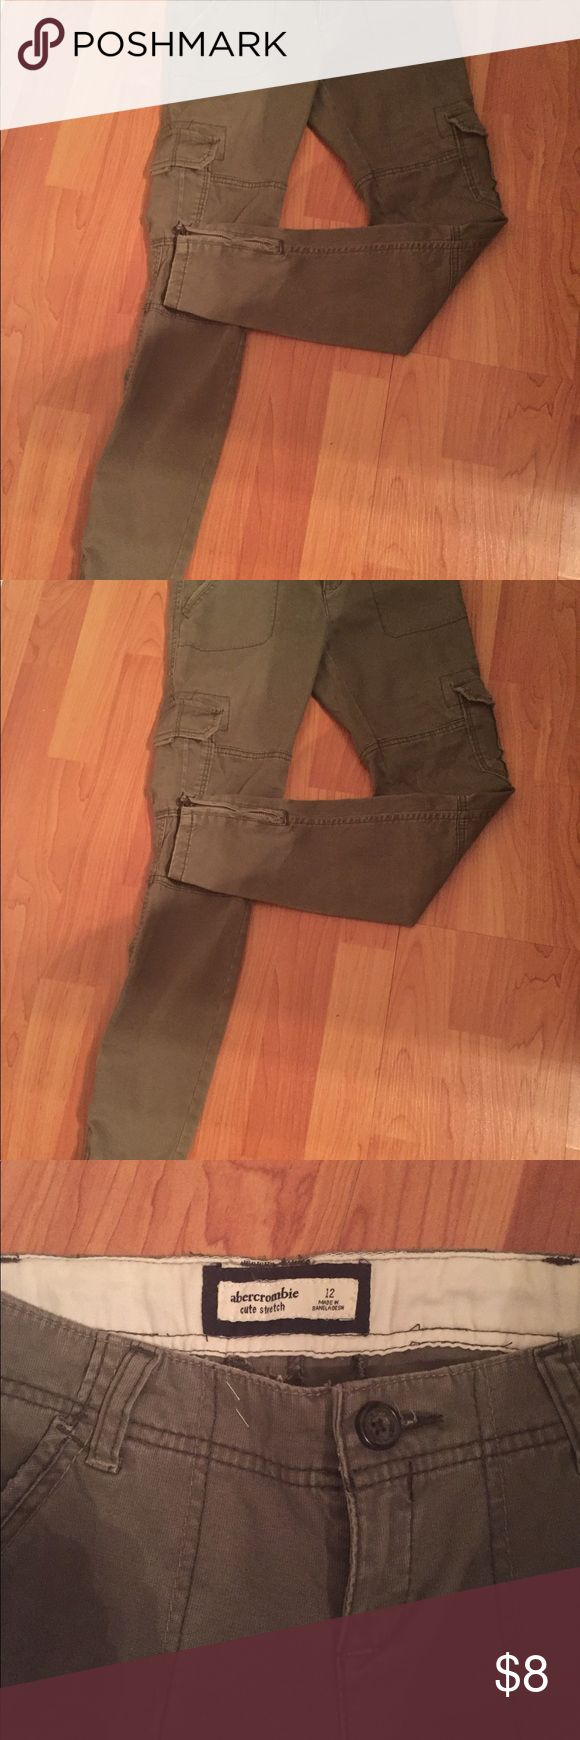 Abercrombie girls size 12 Abercrombie girls green pants cute stretch zipper on bottom of pants abercrombie kids Bottoms Casual